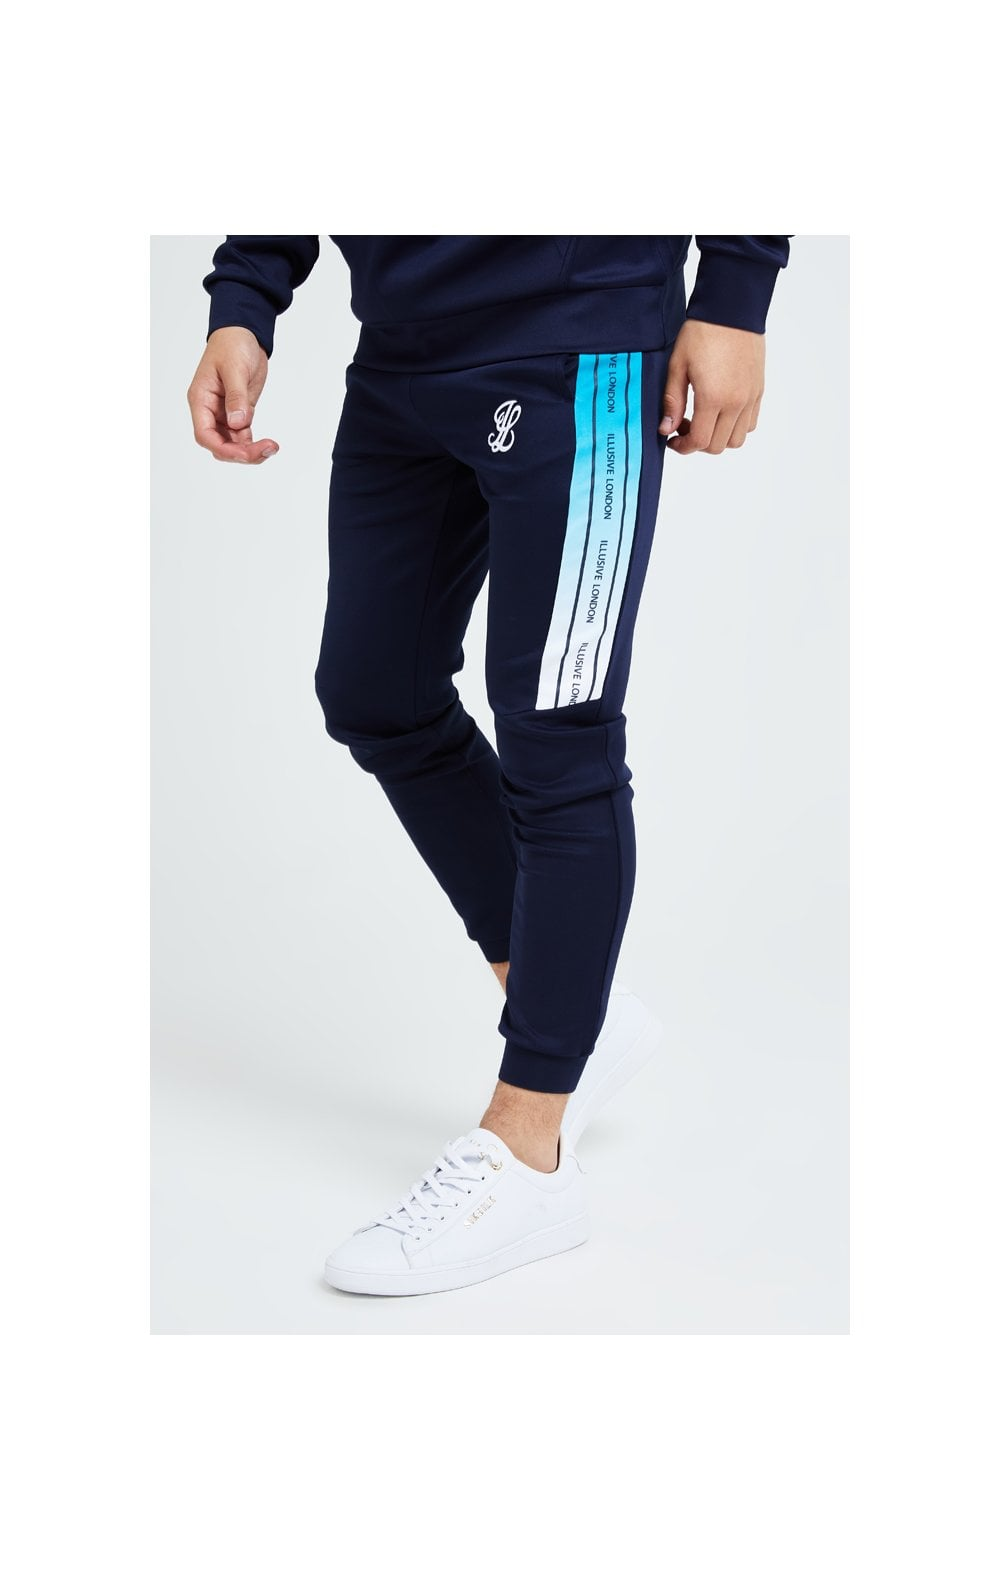 Illusive London Flux Taped Joggers - Navy & Blue